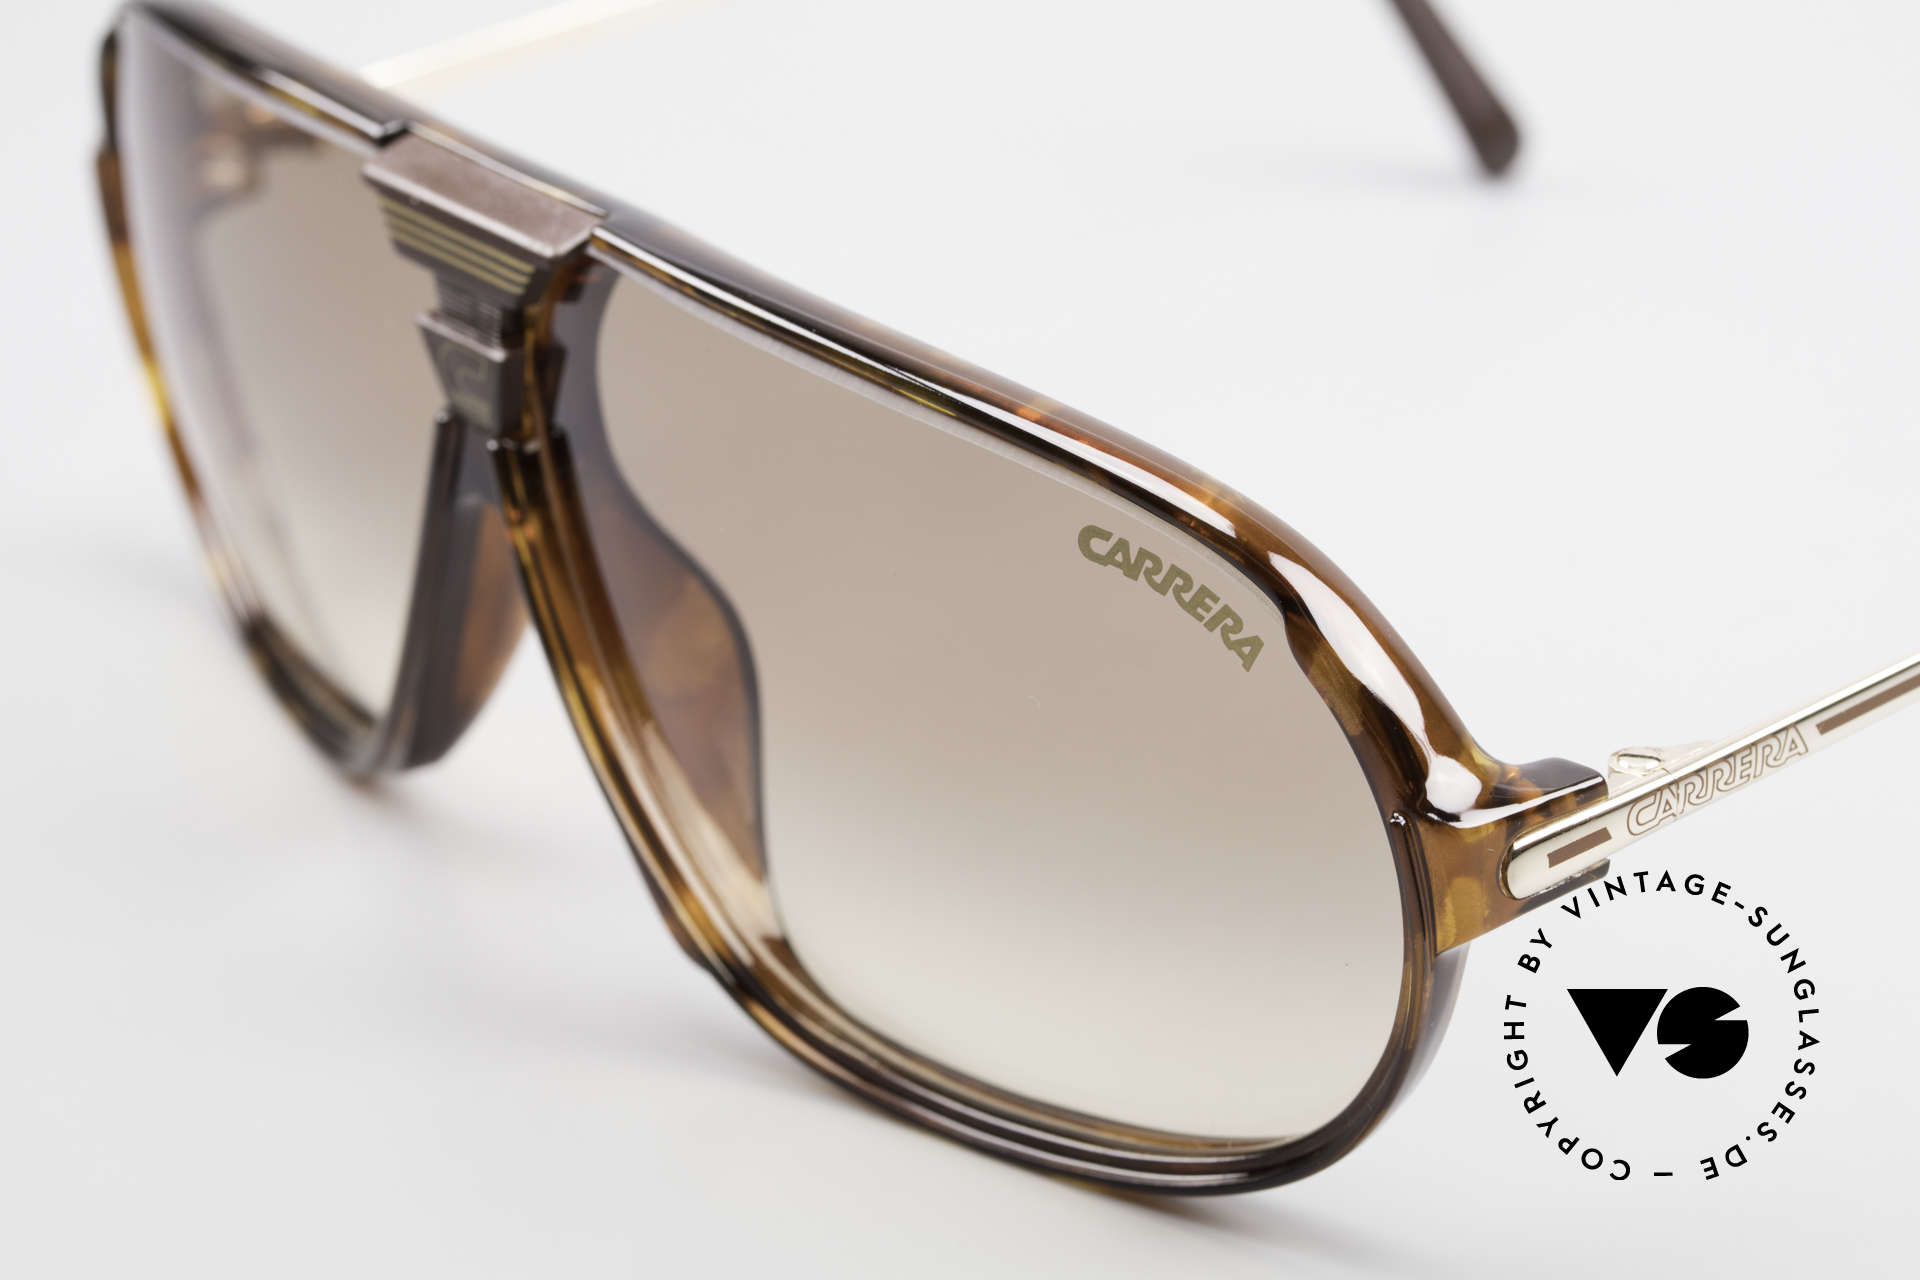 Carrera 5416 80's Shades Additional Lenses, 1x brown-gradient and 1x brown silver mirrored, Made for Men